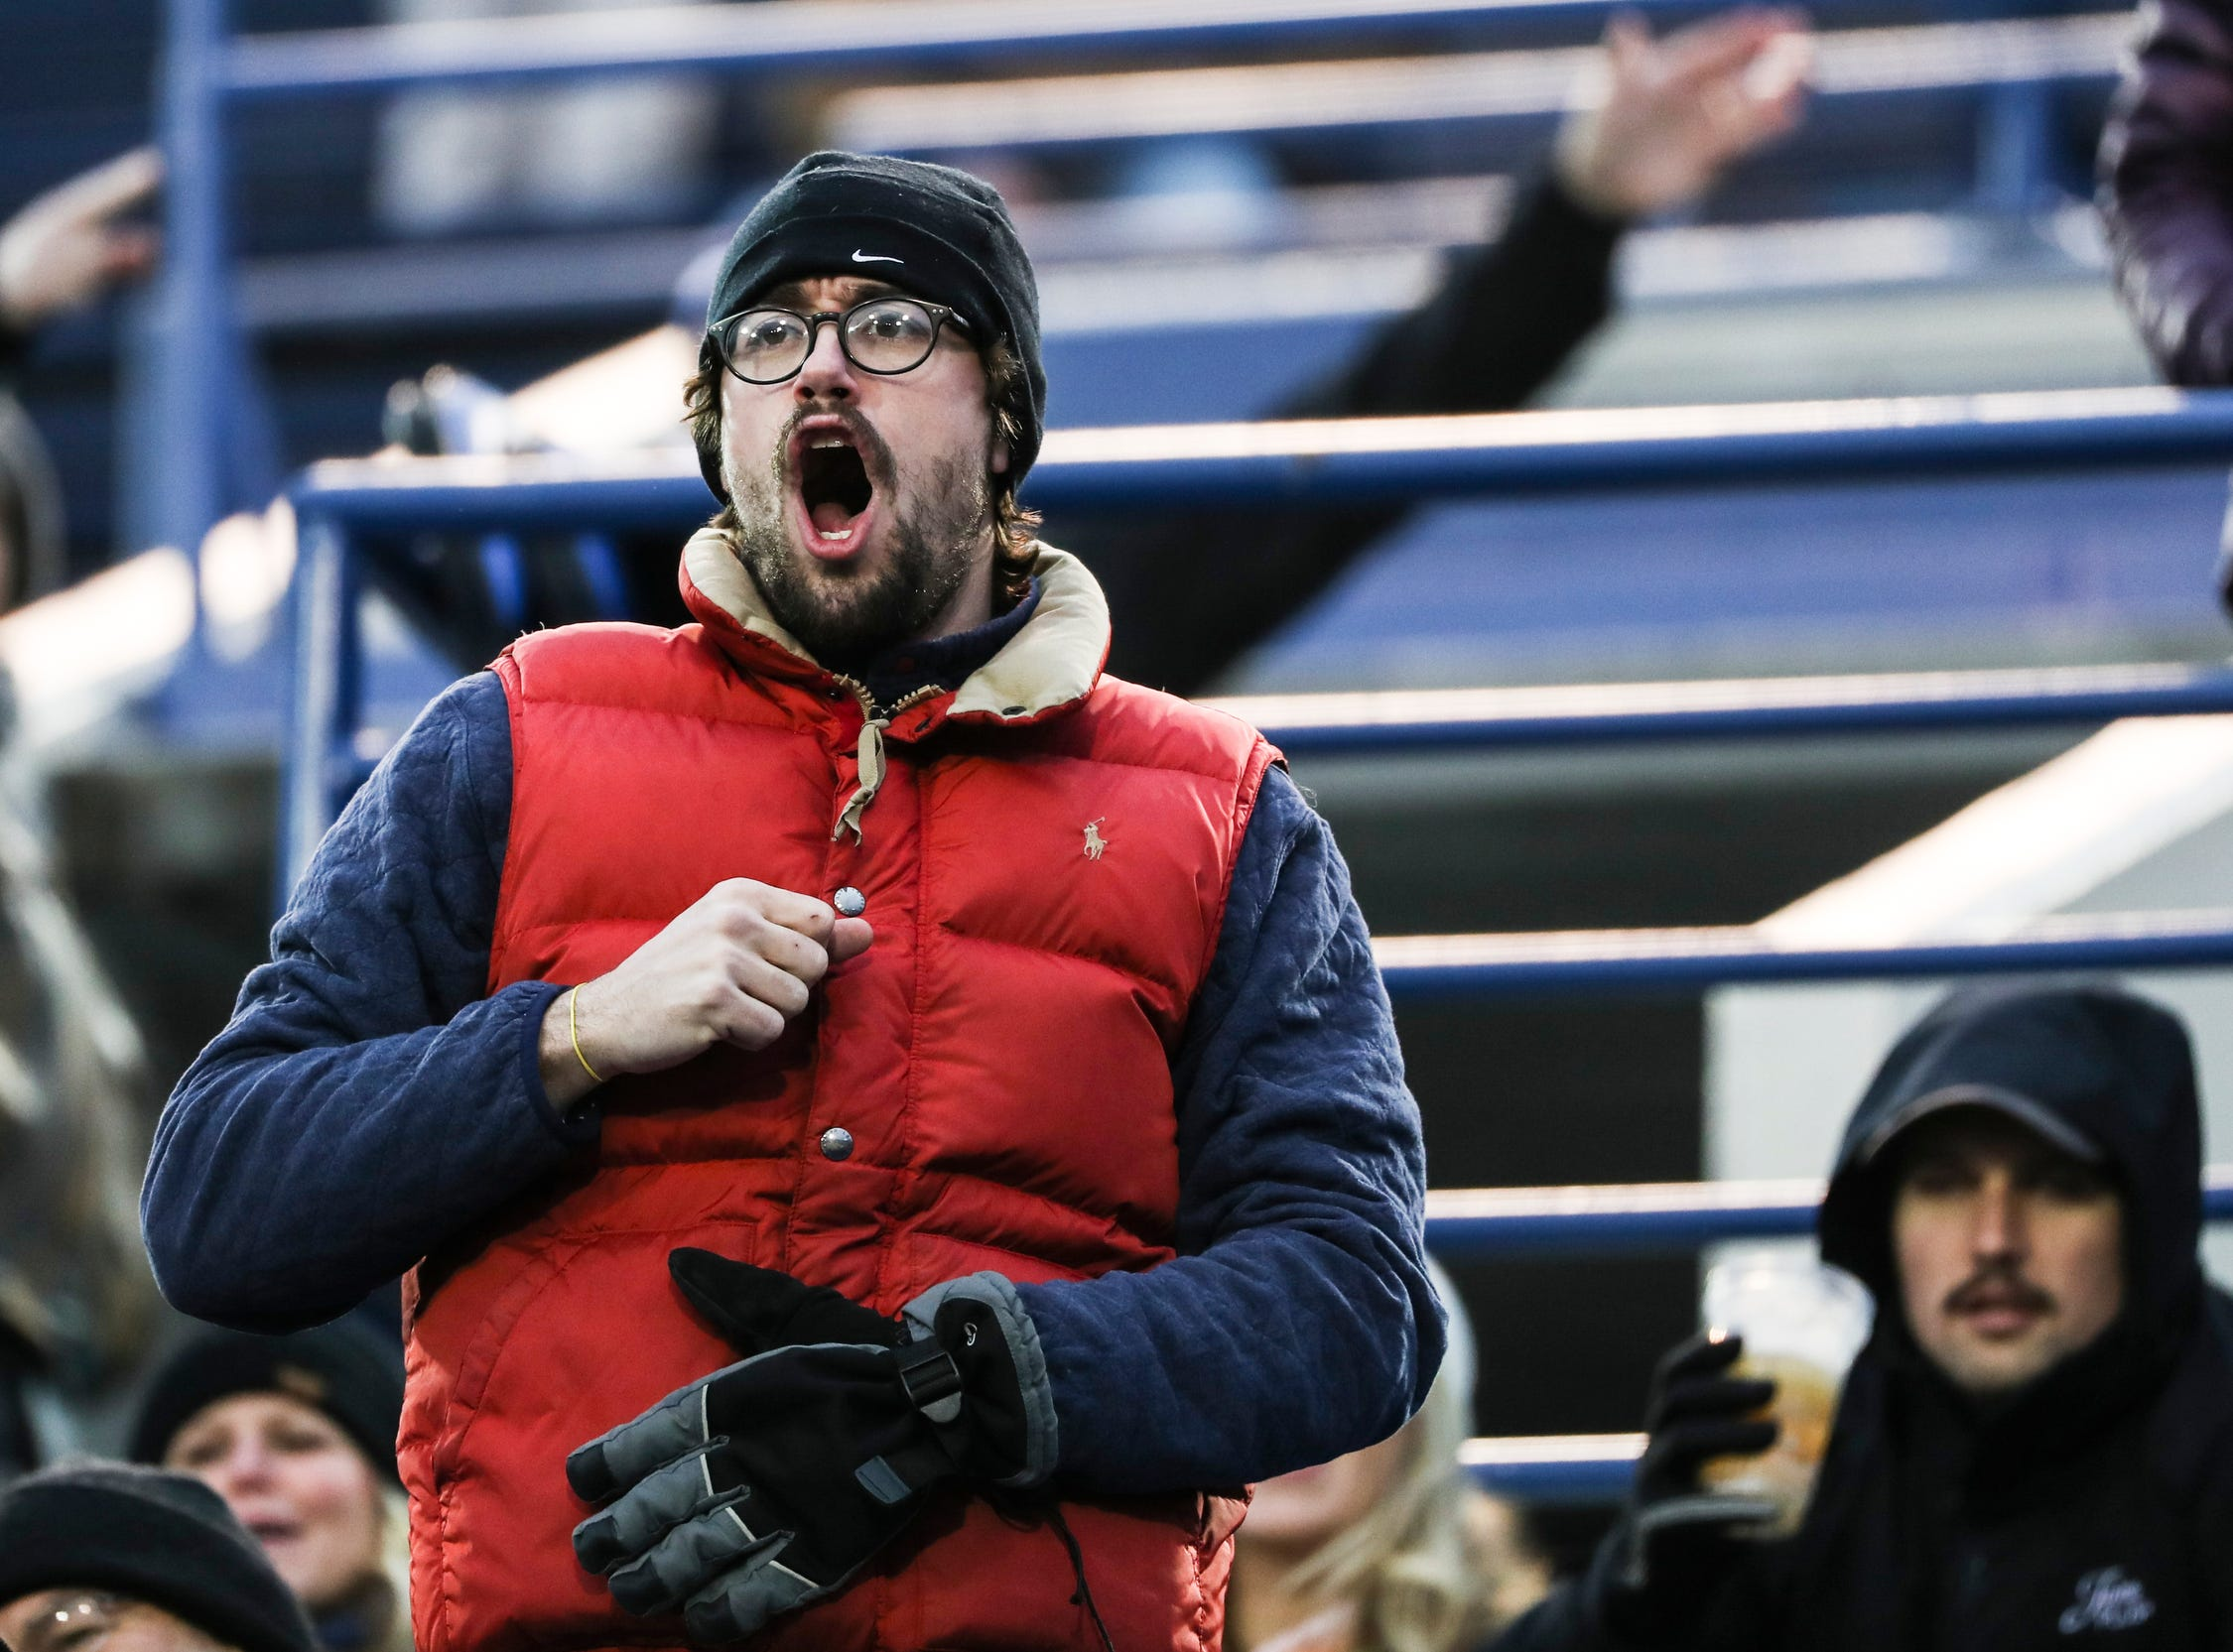 March 02, 2019 - Fans react during Saturday's game against the San Diego Fleet.